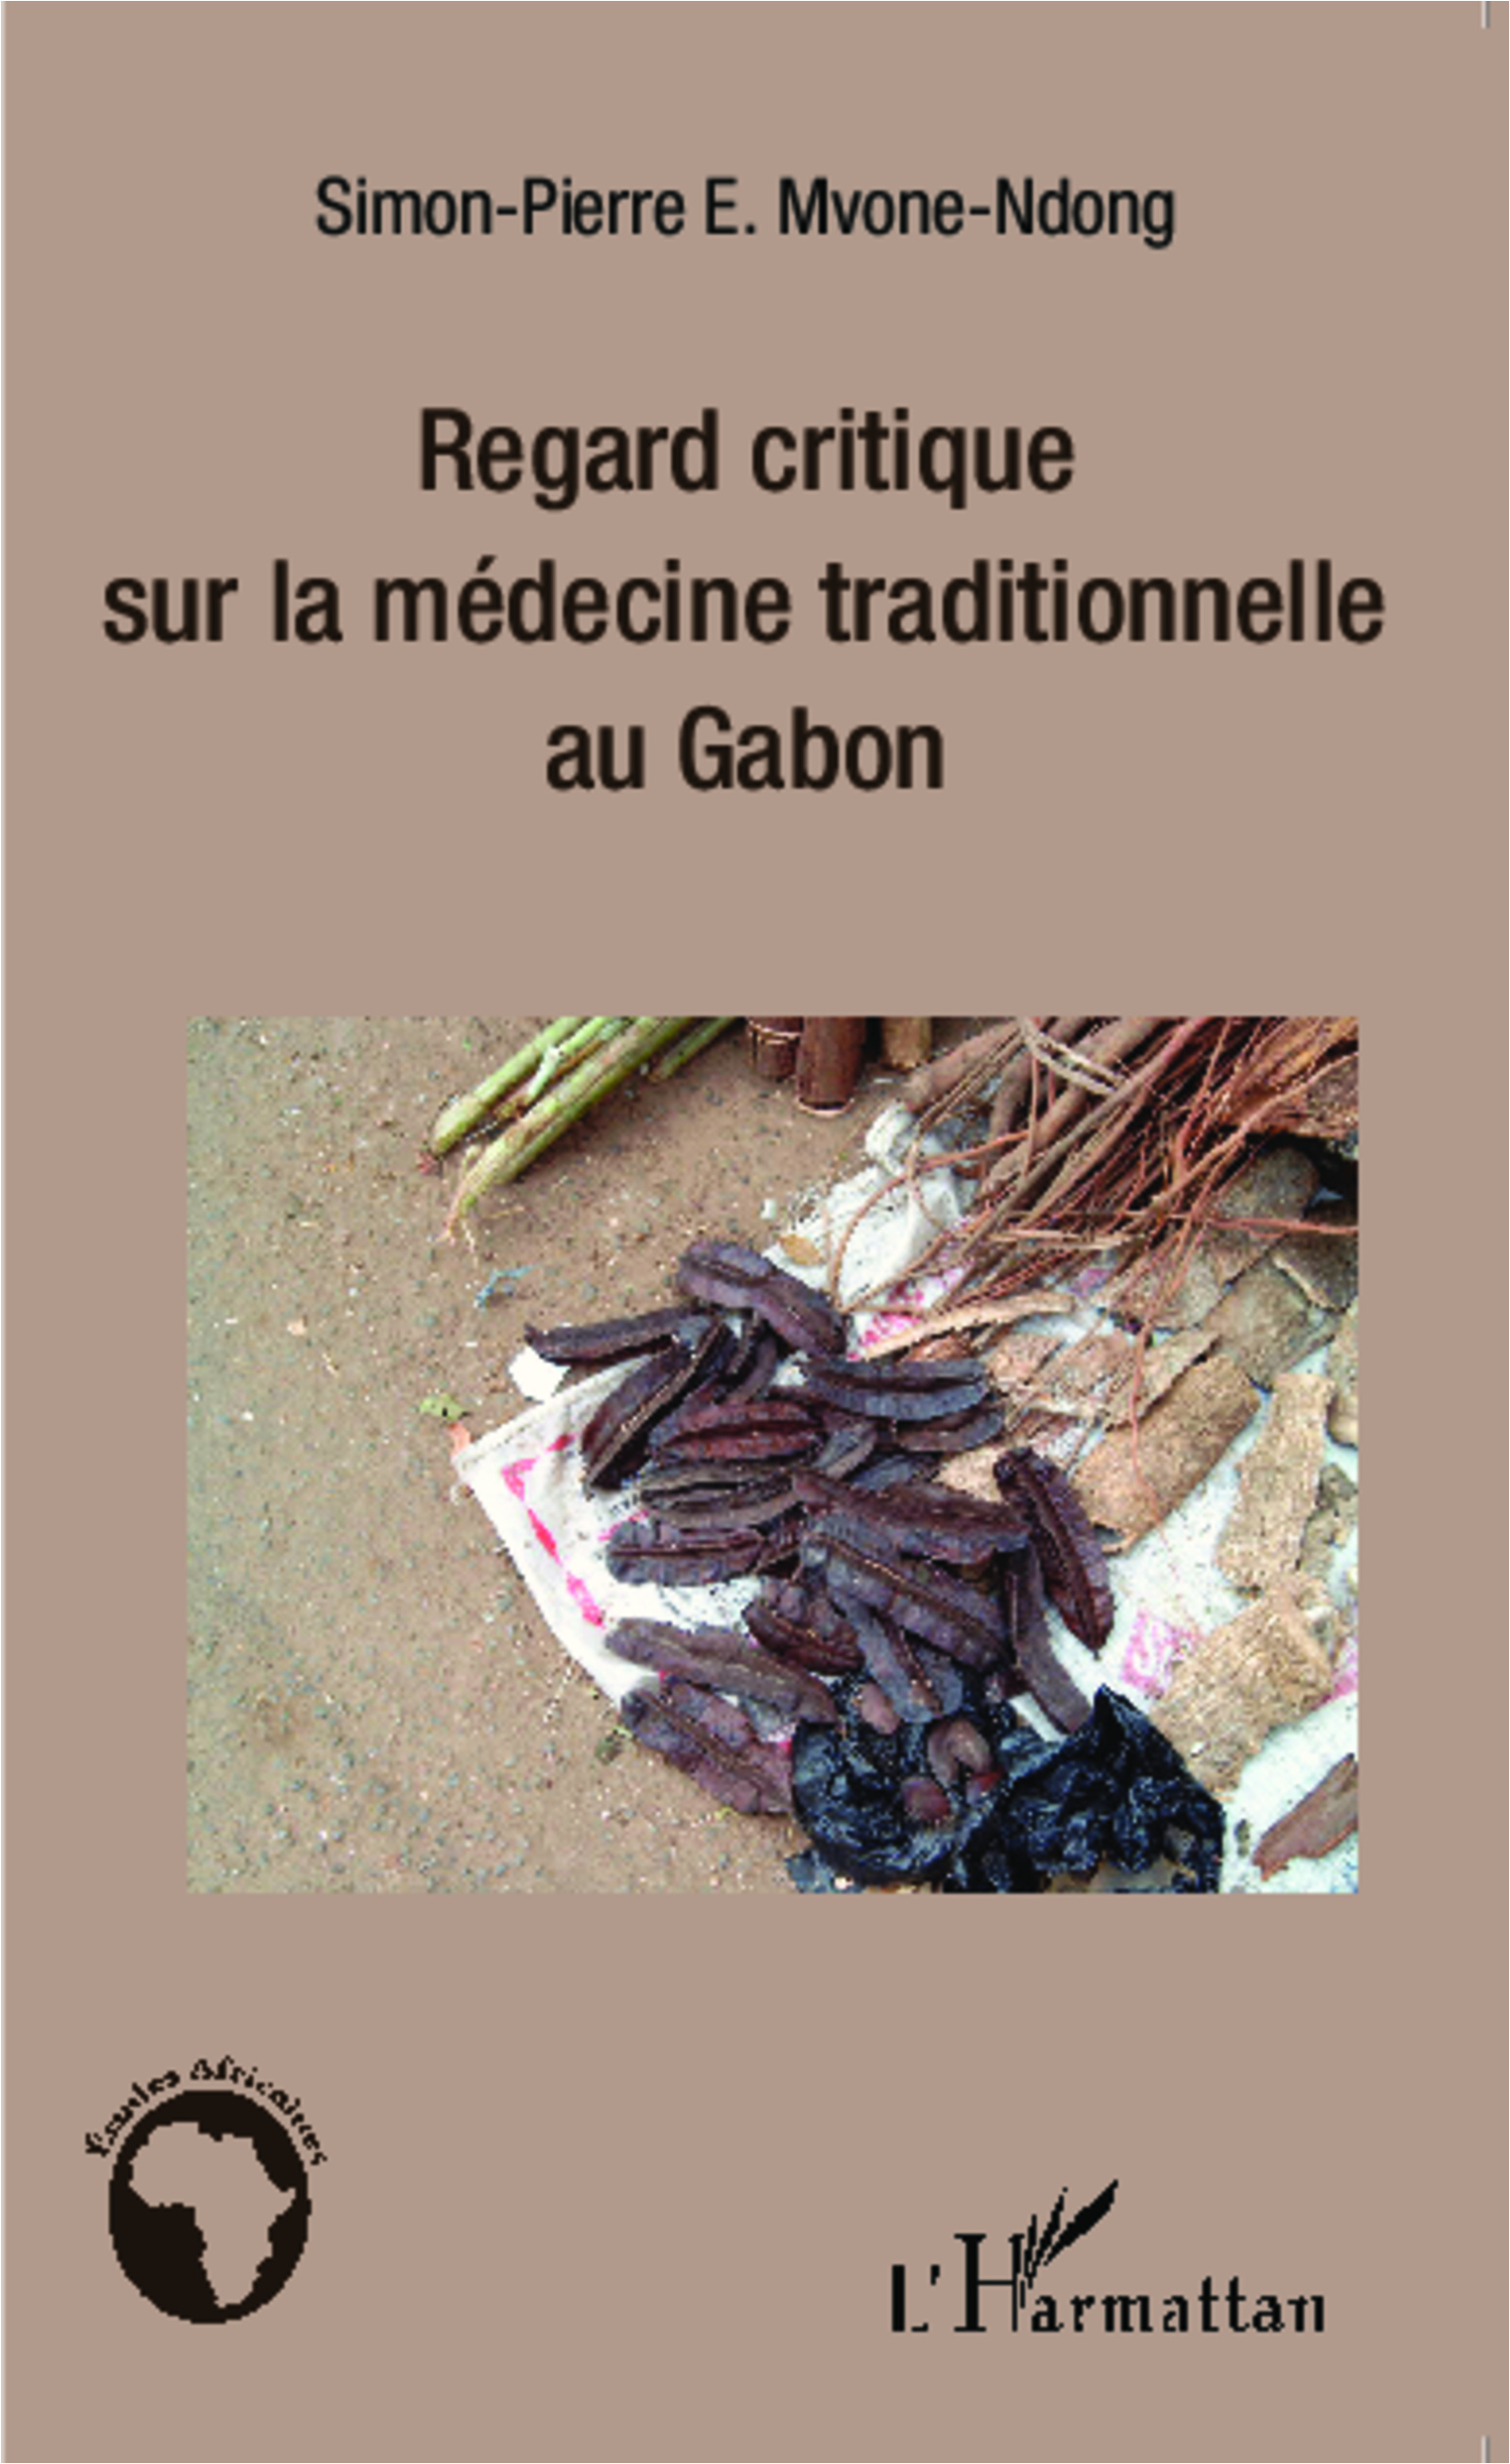 Regard critique sur la médecine traditionnelle au Gabon